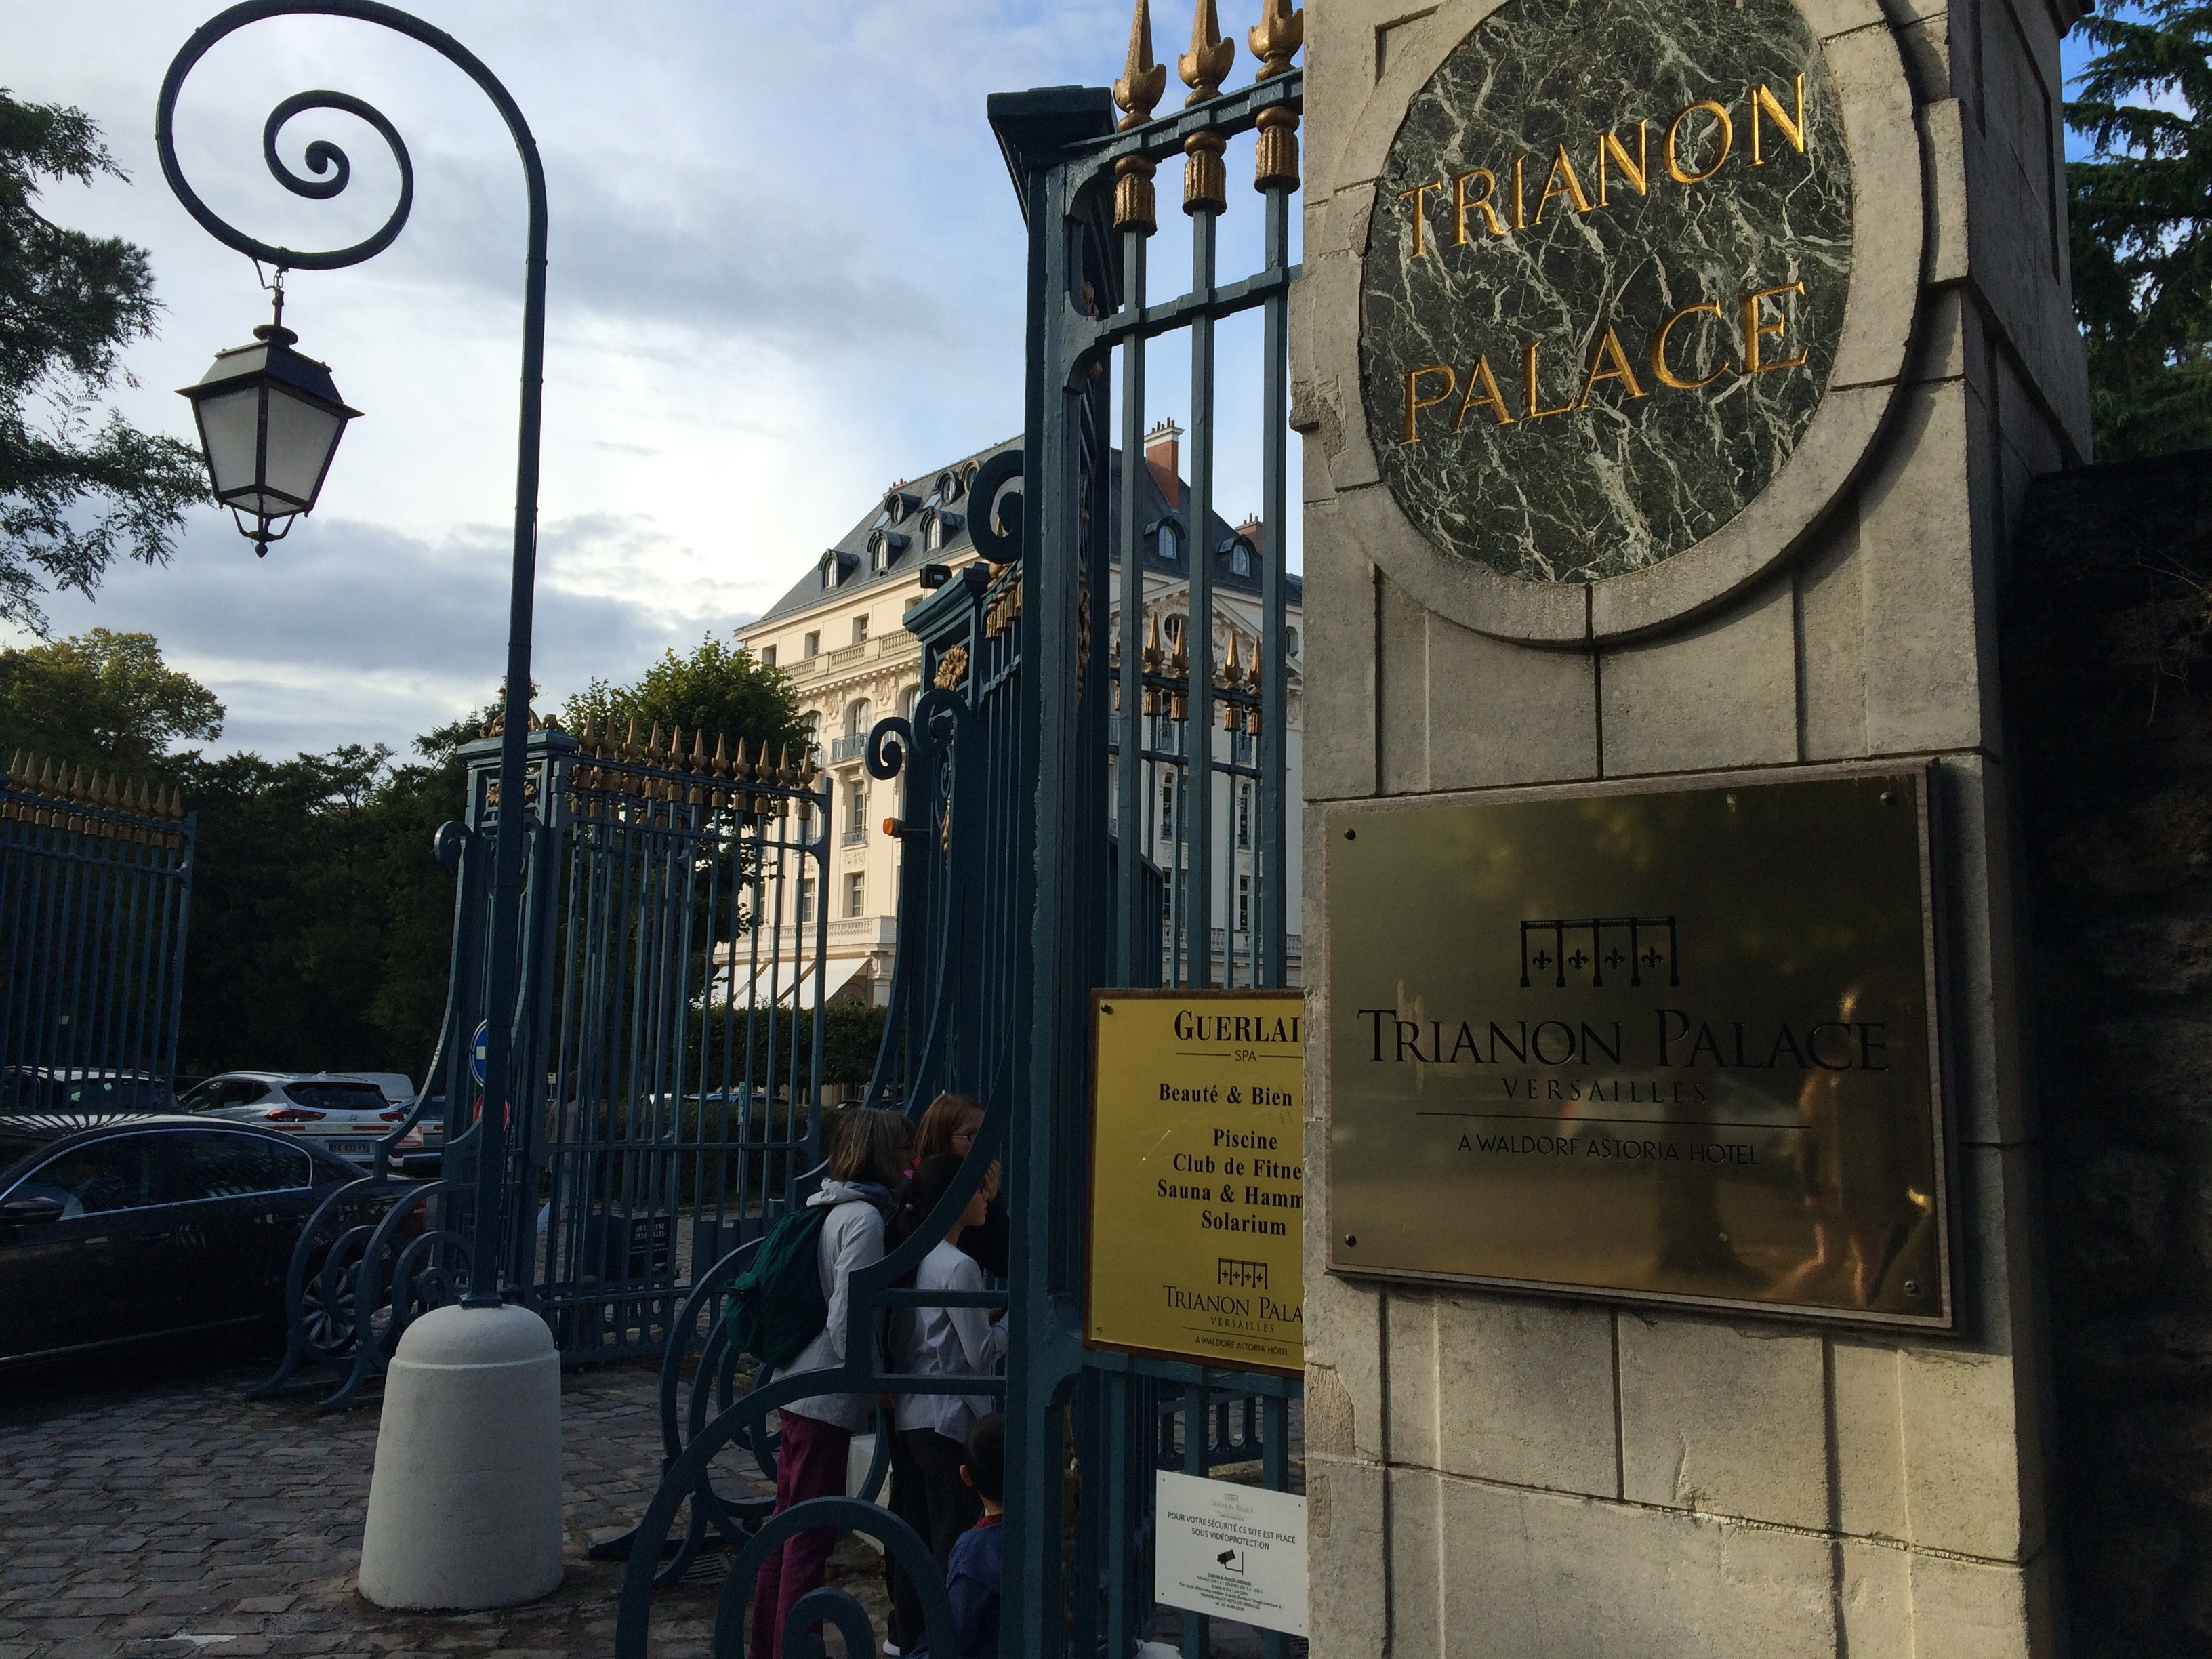 Entrance of the Trianon Palace Versailles, A Waldorf Astoria Hotel